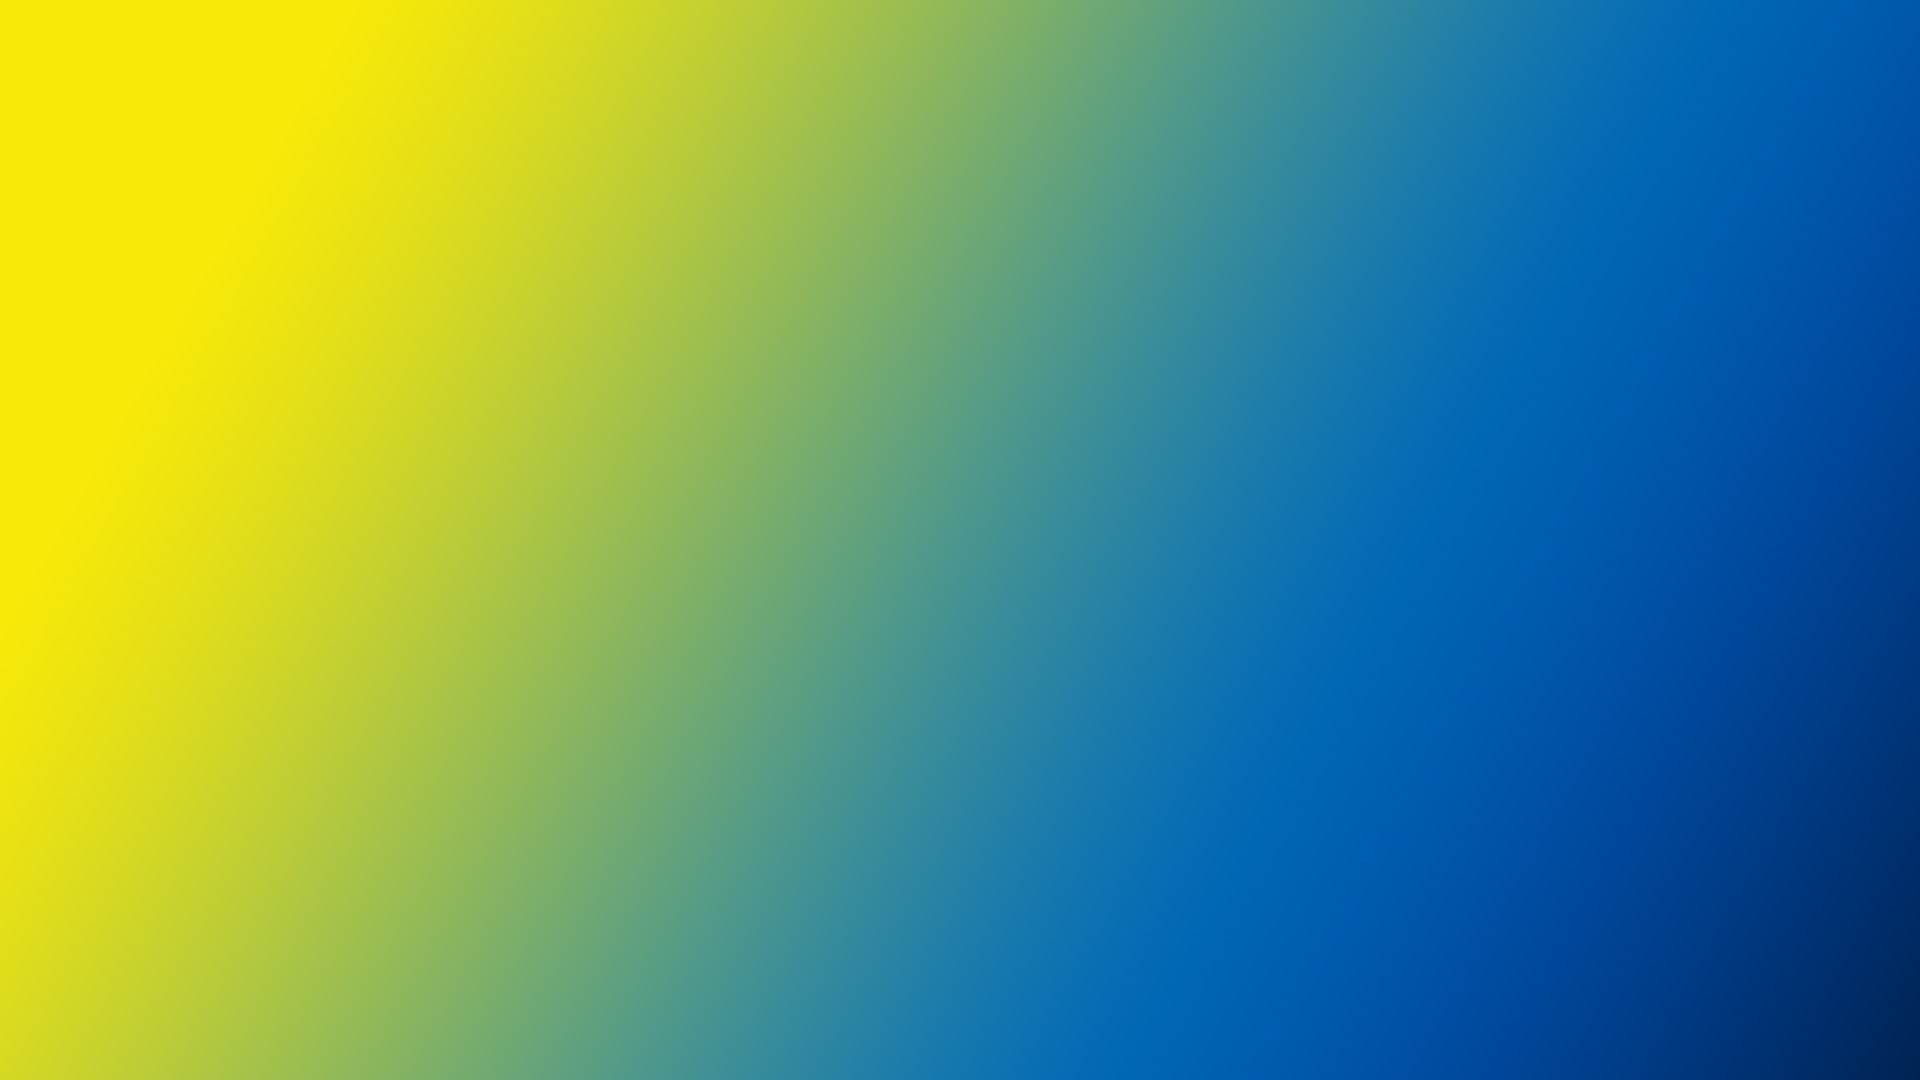 yellow-blue-Presentation-Gradient-Background